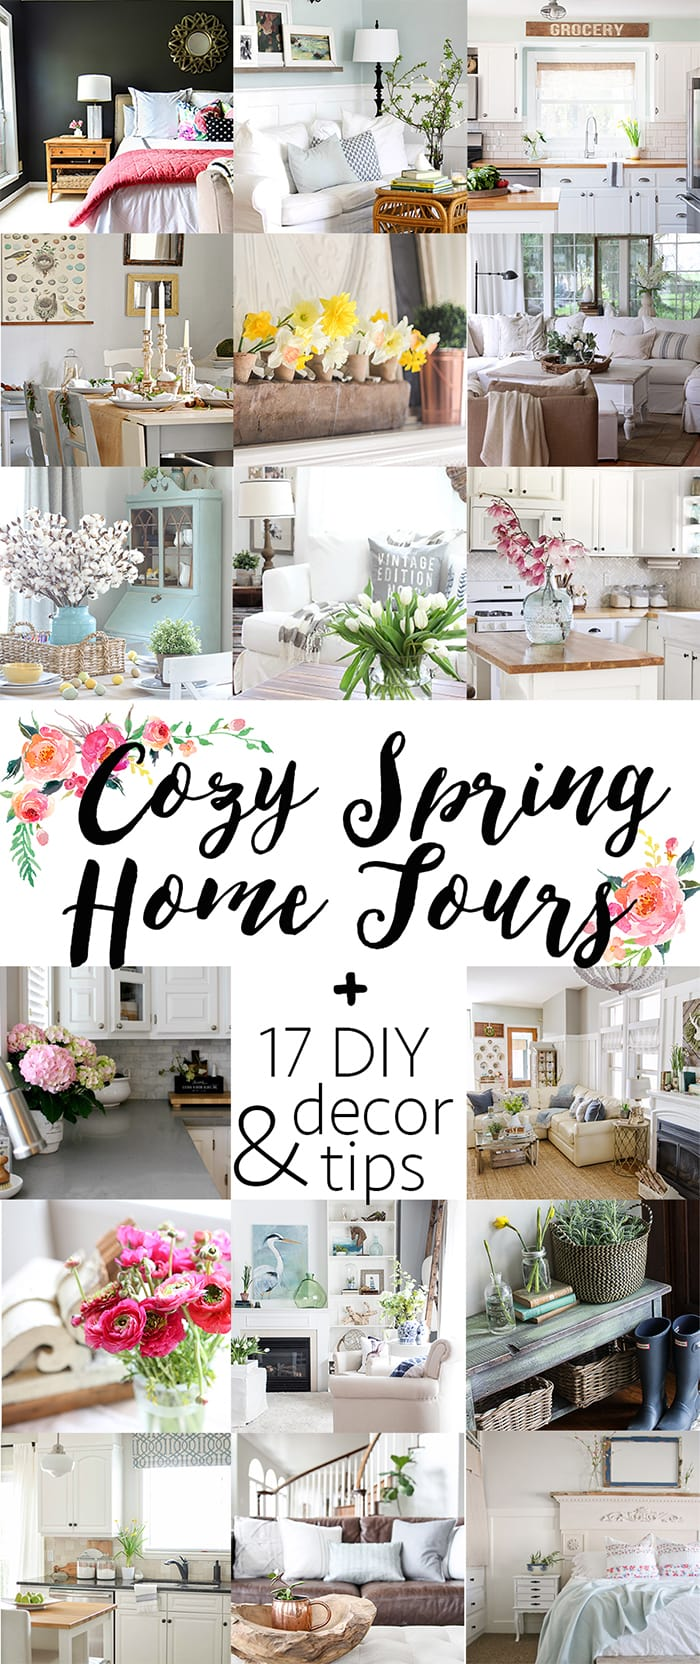 So many beautiful homes! Spring decorating ideas, diy tips, and more in these spring home tours | maisondepax.com